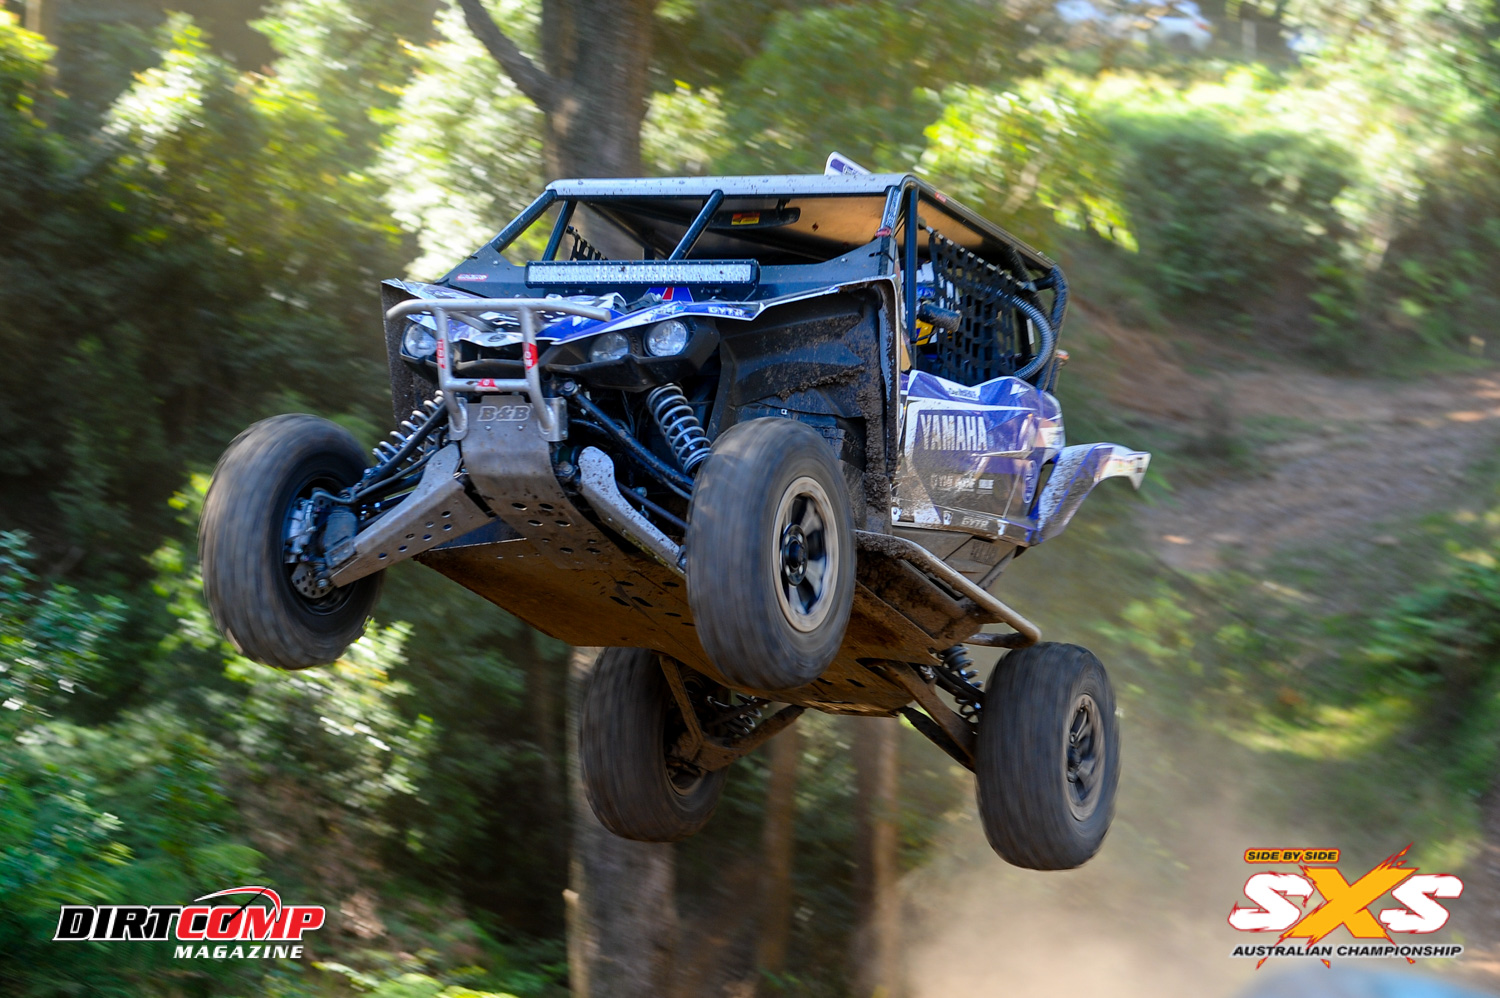 McKenzie flying high at round 2 of the SXS Australian Championship